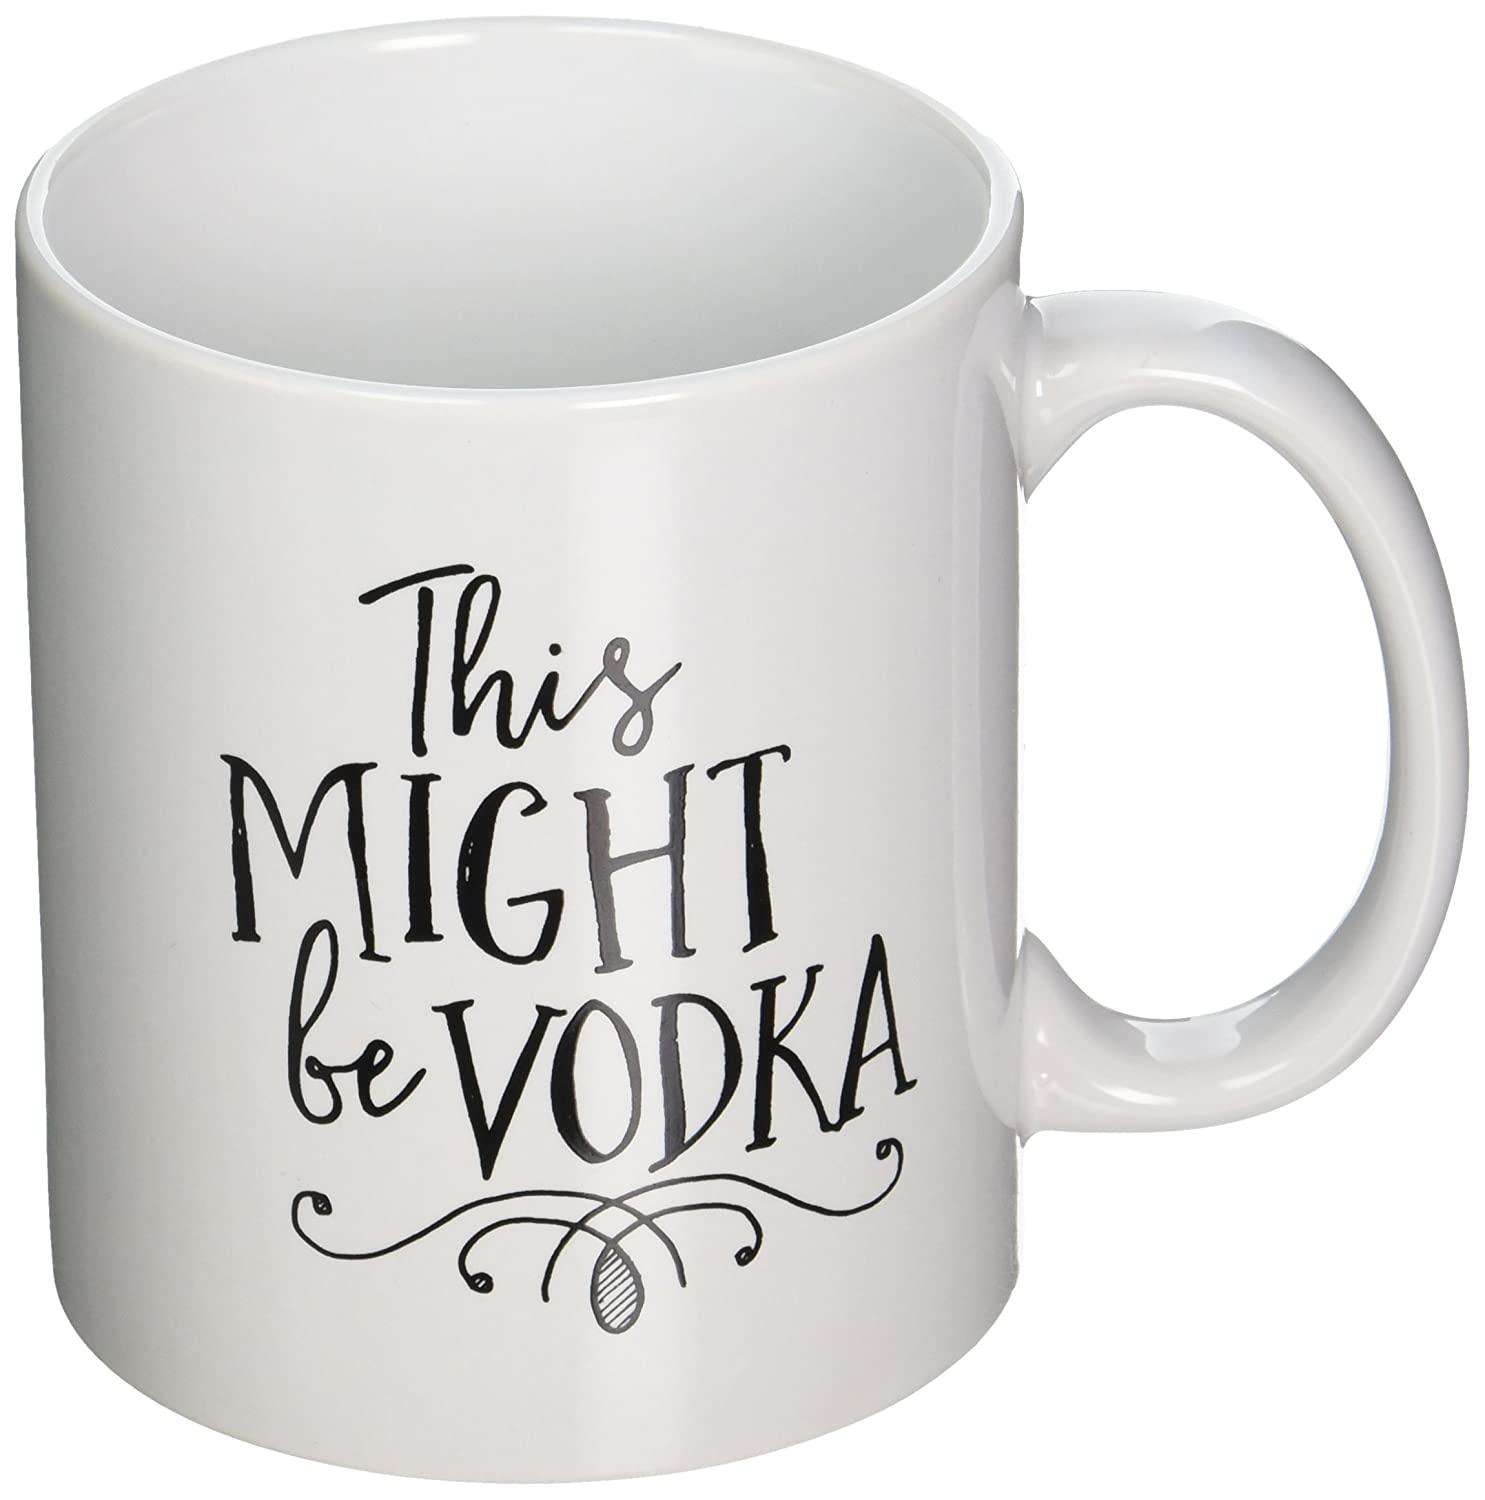 Mom or Dad Women Sister Teacher EM3 Might Be Vodka Mug by Eitly -Great Sarcasm Gift for Men Brother Boss Funny 11oz Coffee or Tea Mugs